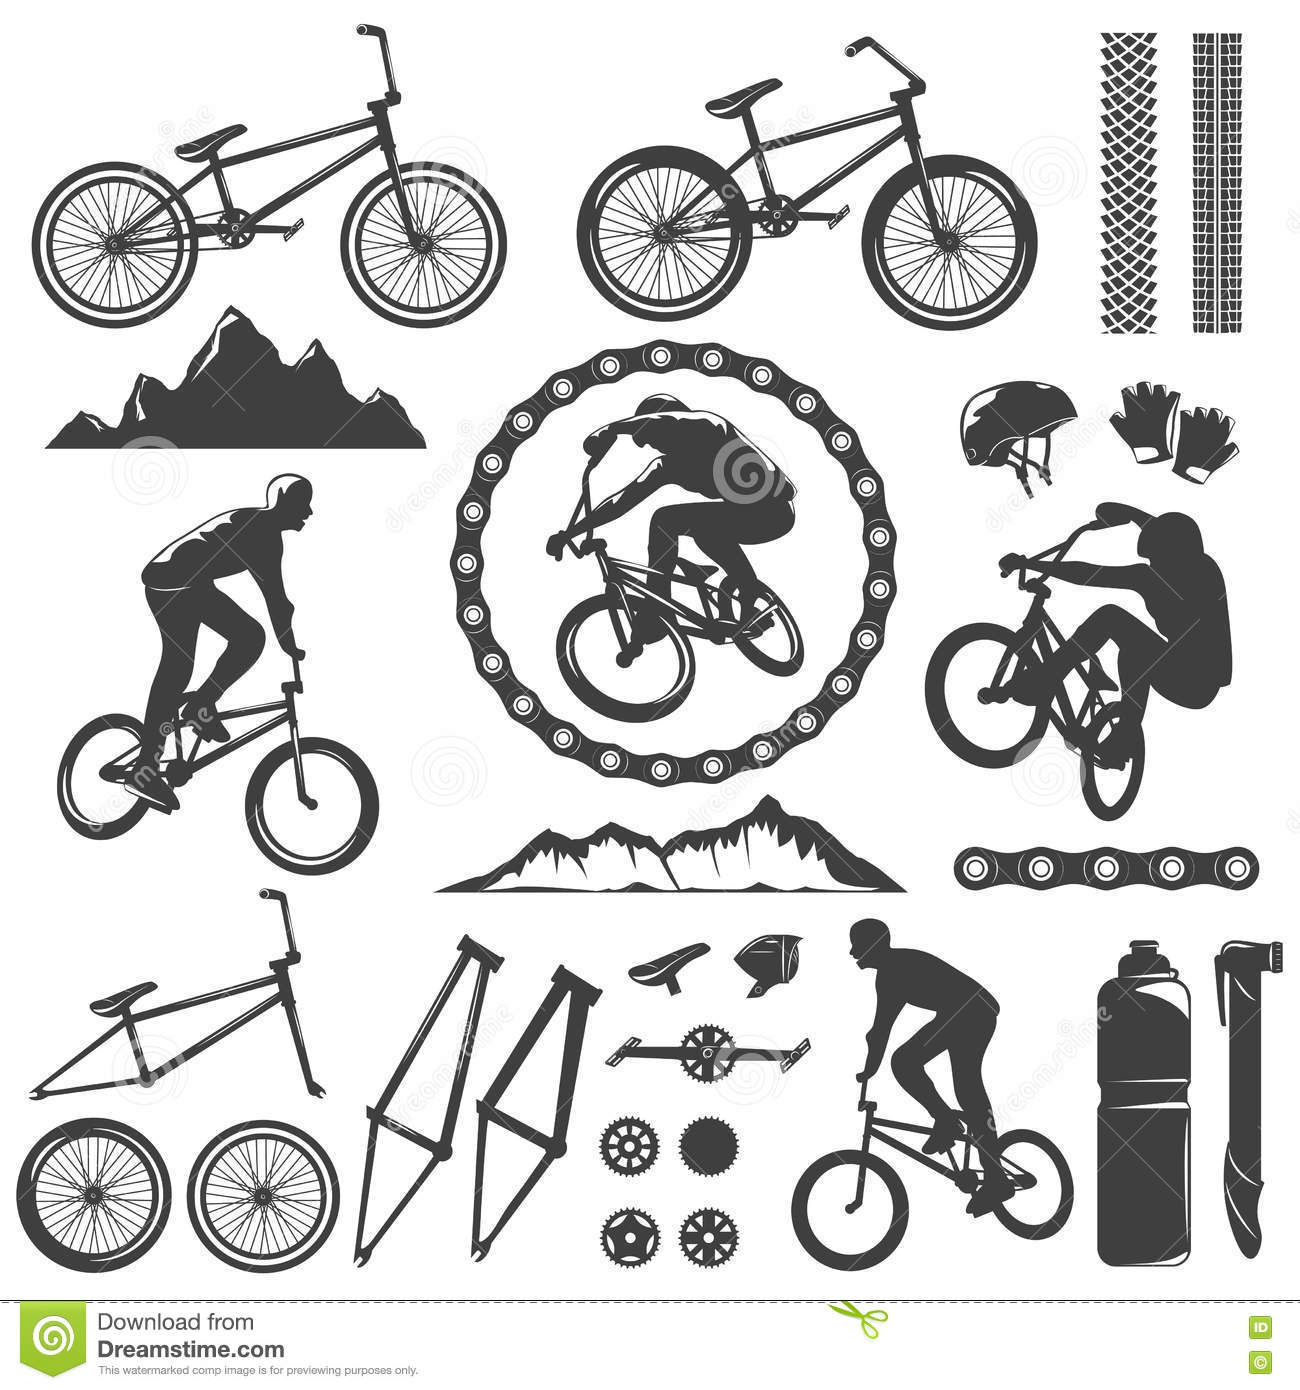 BMX Decorative Graphic Icons Set Stock Vector - Illustration of ...